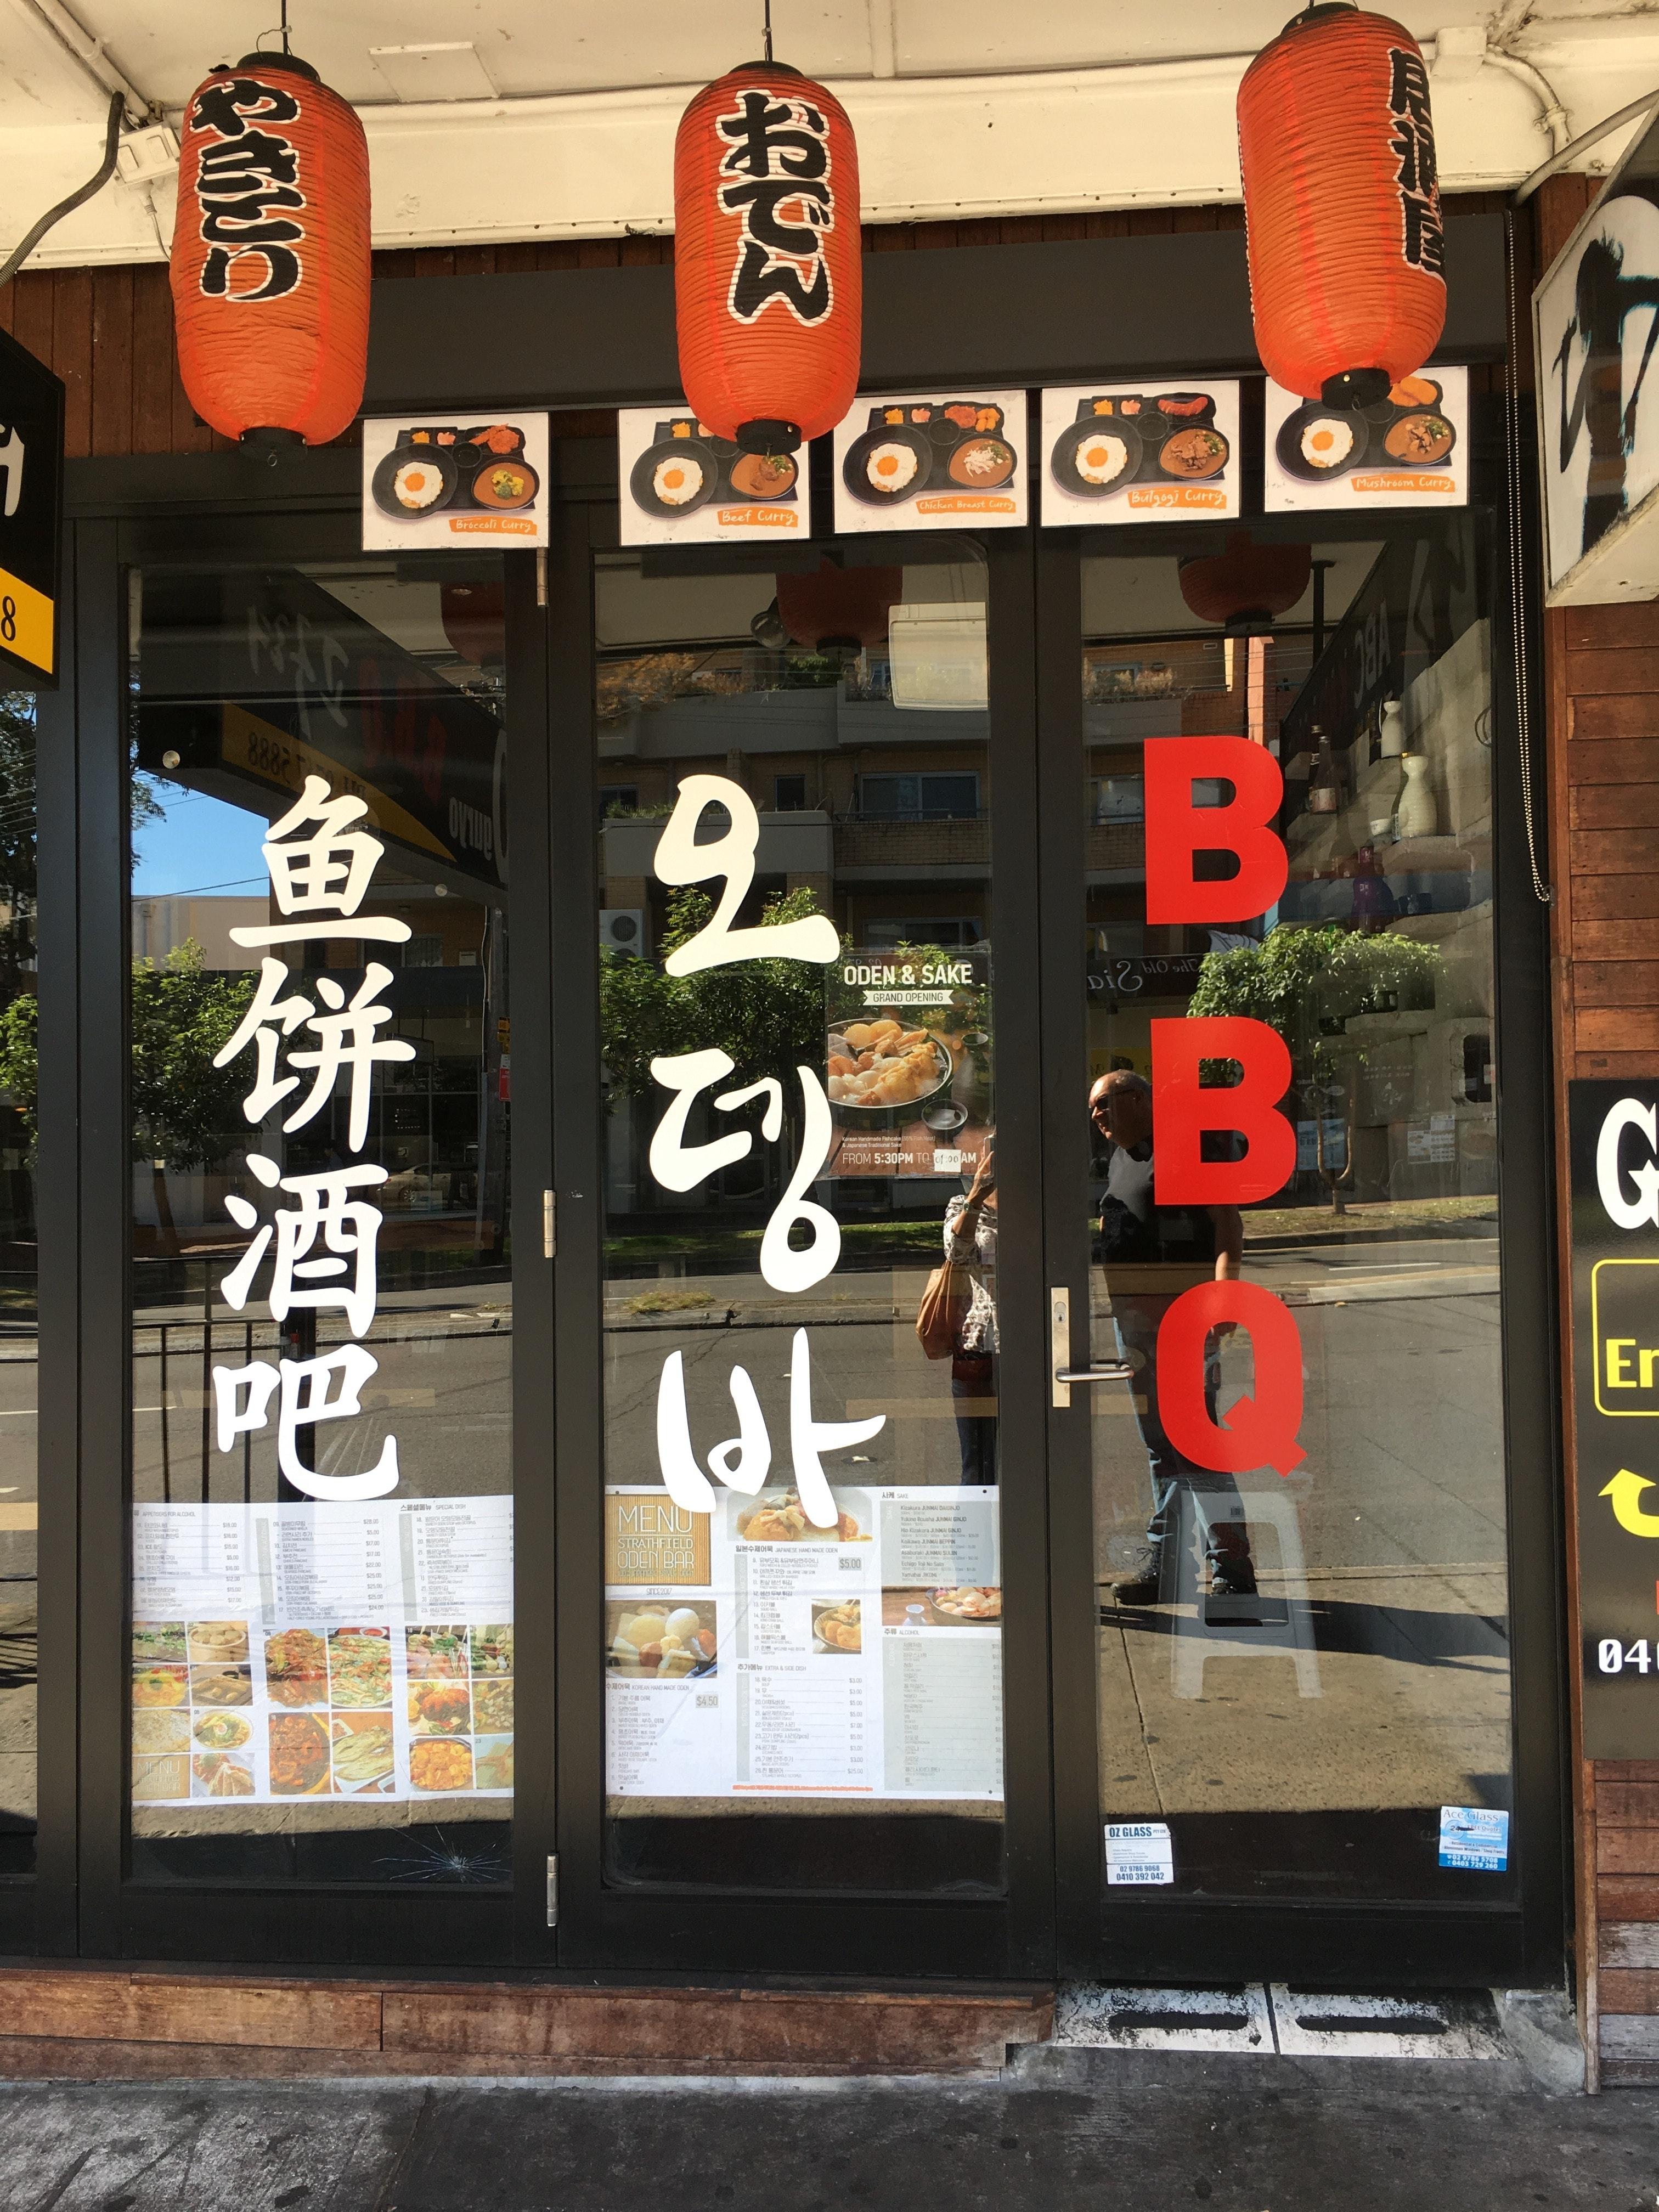 Council wants 'English first' policy on shop signs – what does it mean for multicultural Australia?